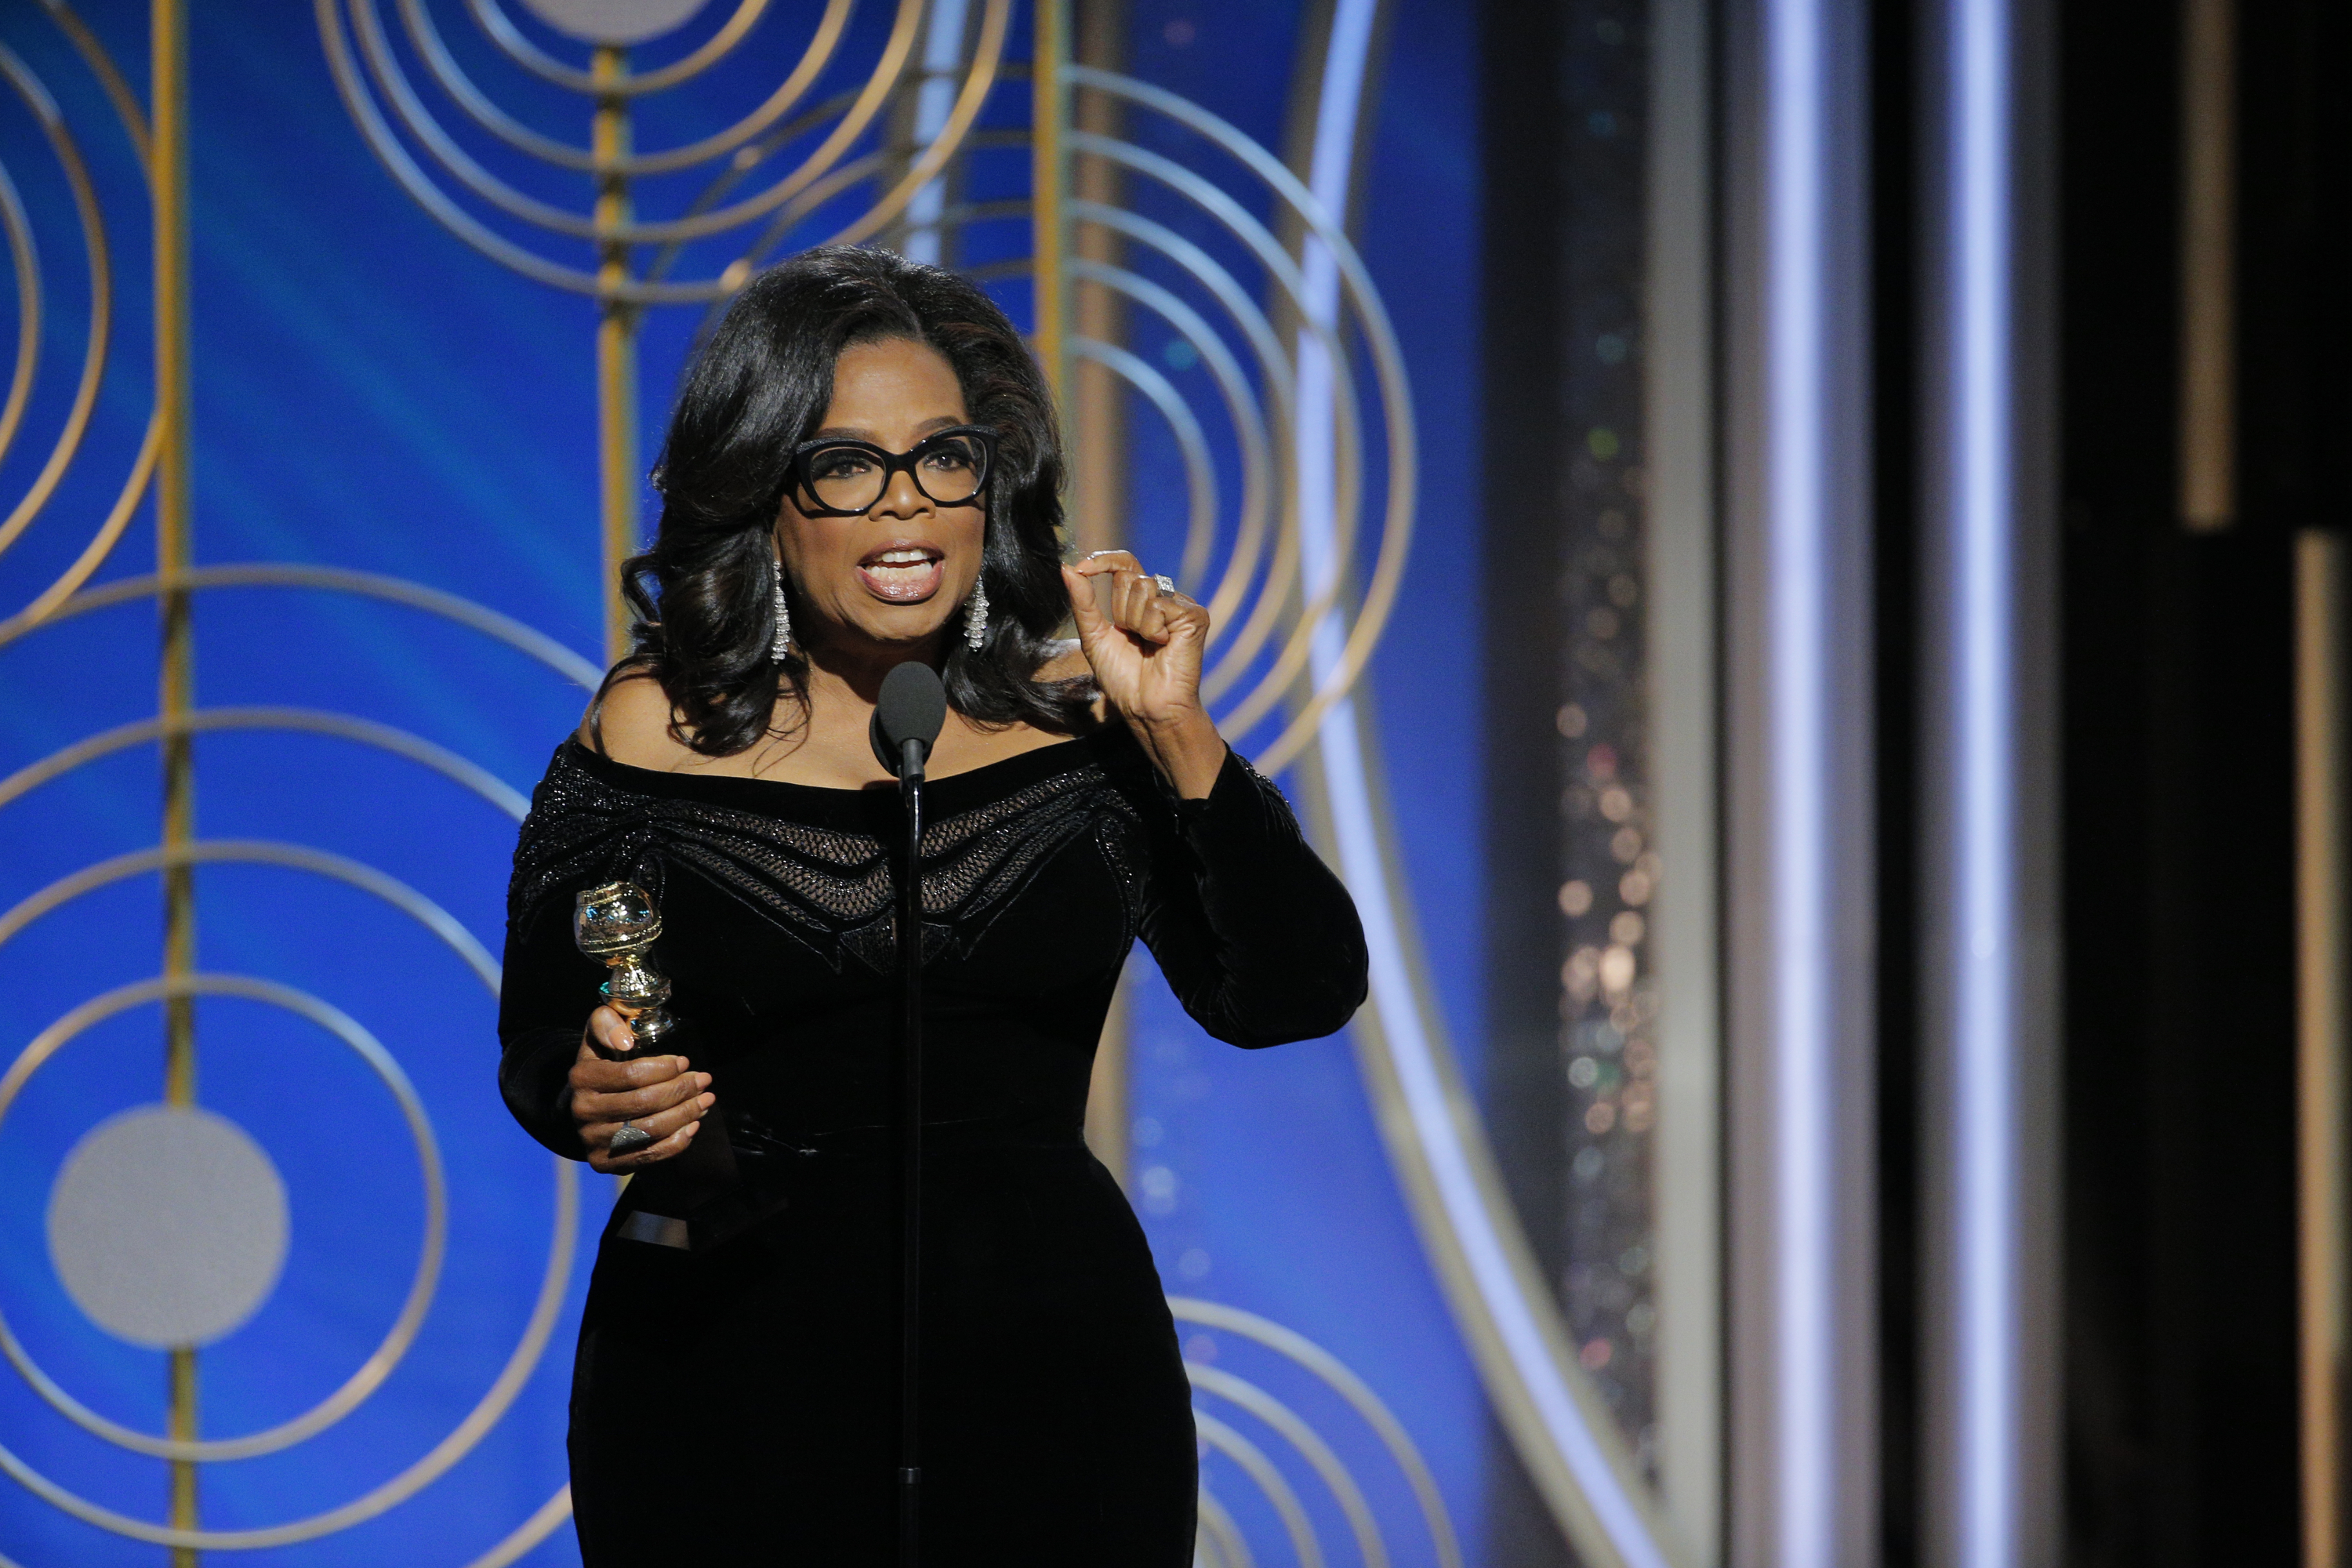 Oprah Winfrey accepts the 2018 Cecil B. DeMille Award speaks onstage during the 75th Annual Golden Globe Awards at The Beverly Hilton Hotel on Jan. 7, 2018 in Beverly Hills, California.